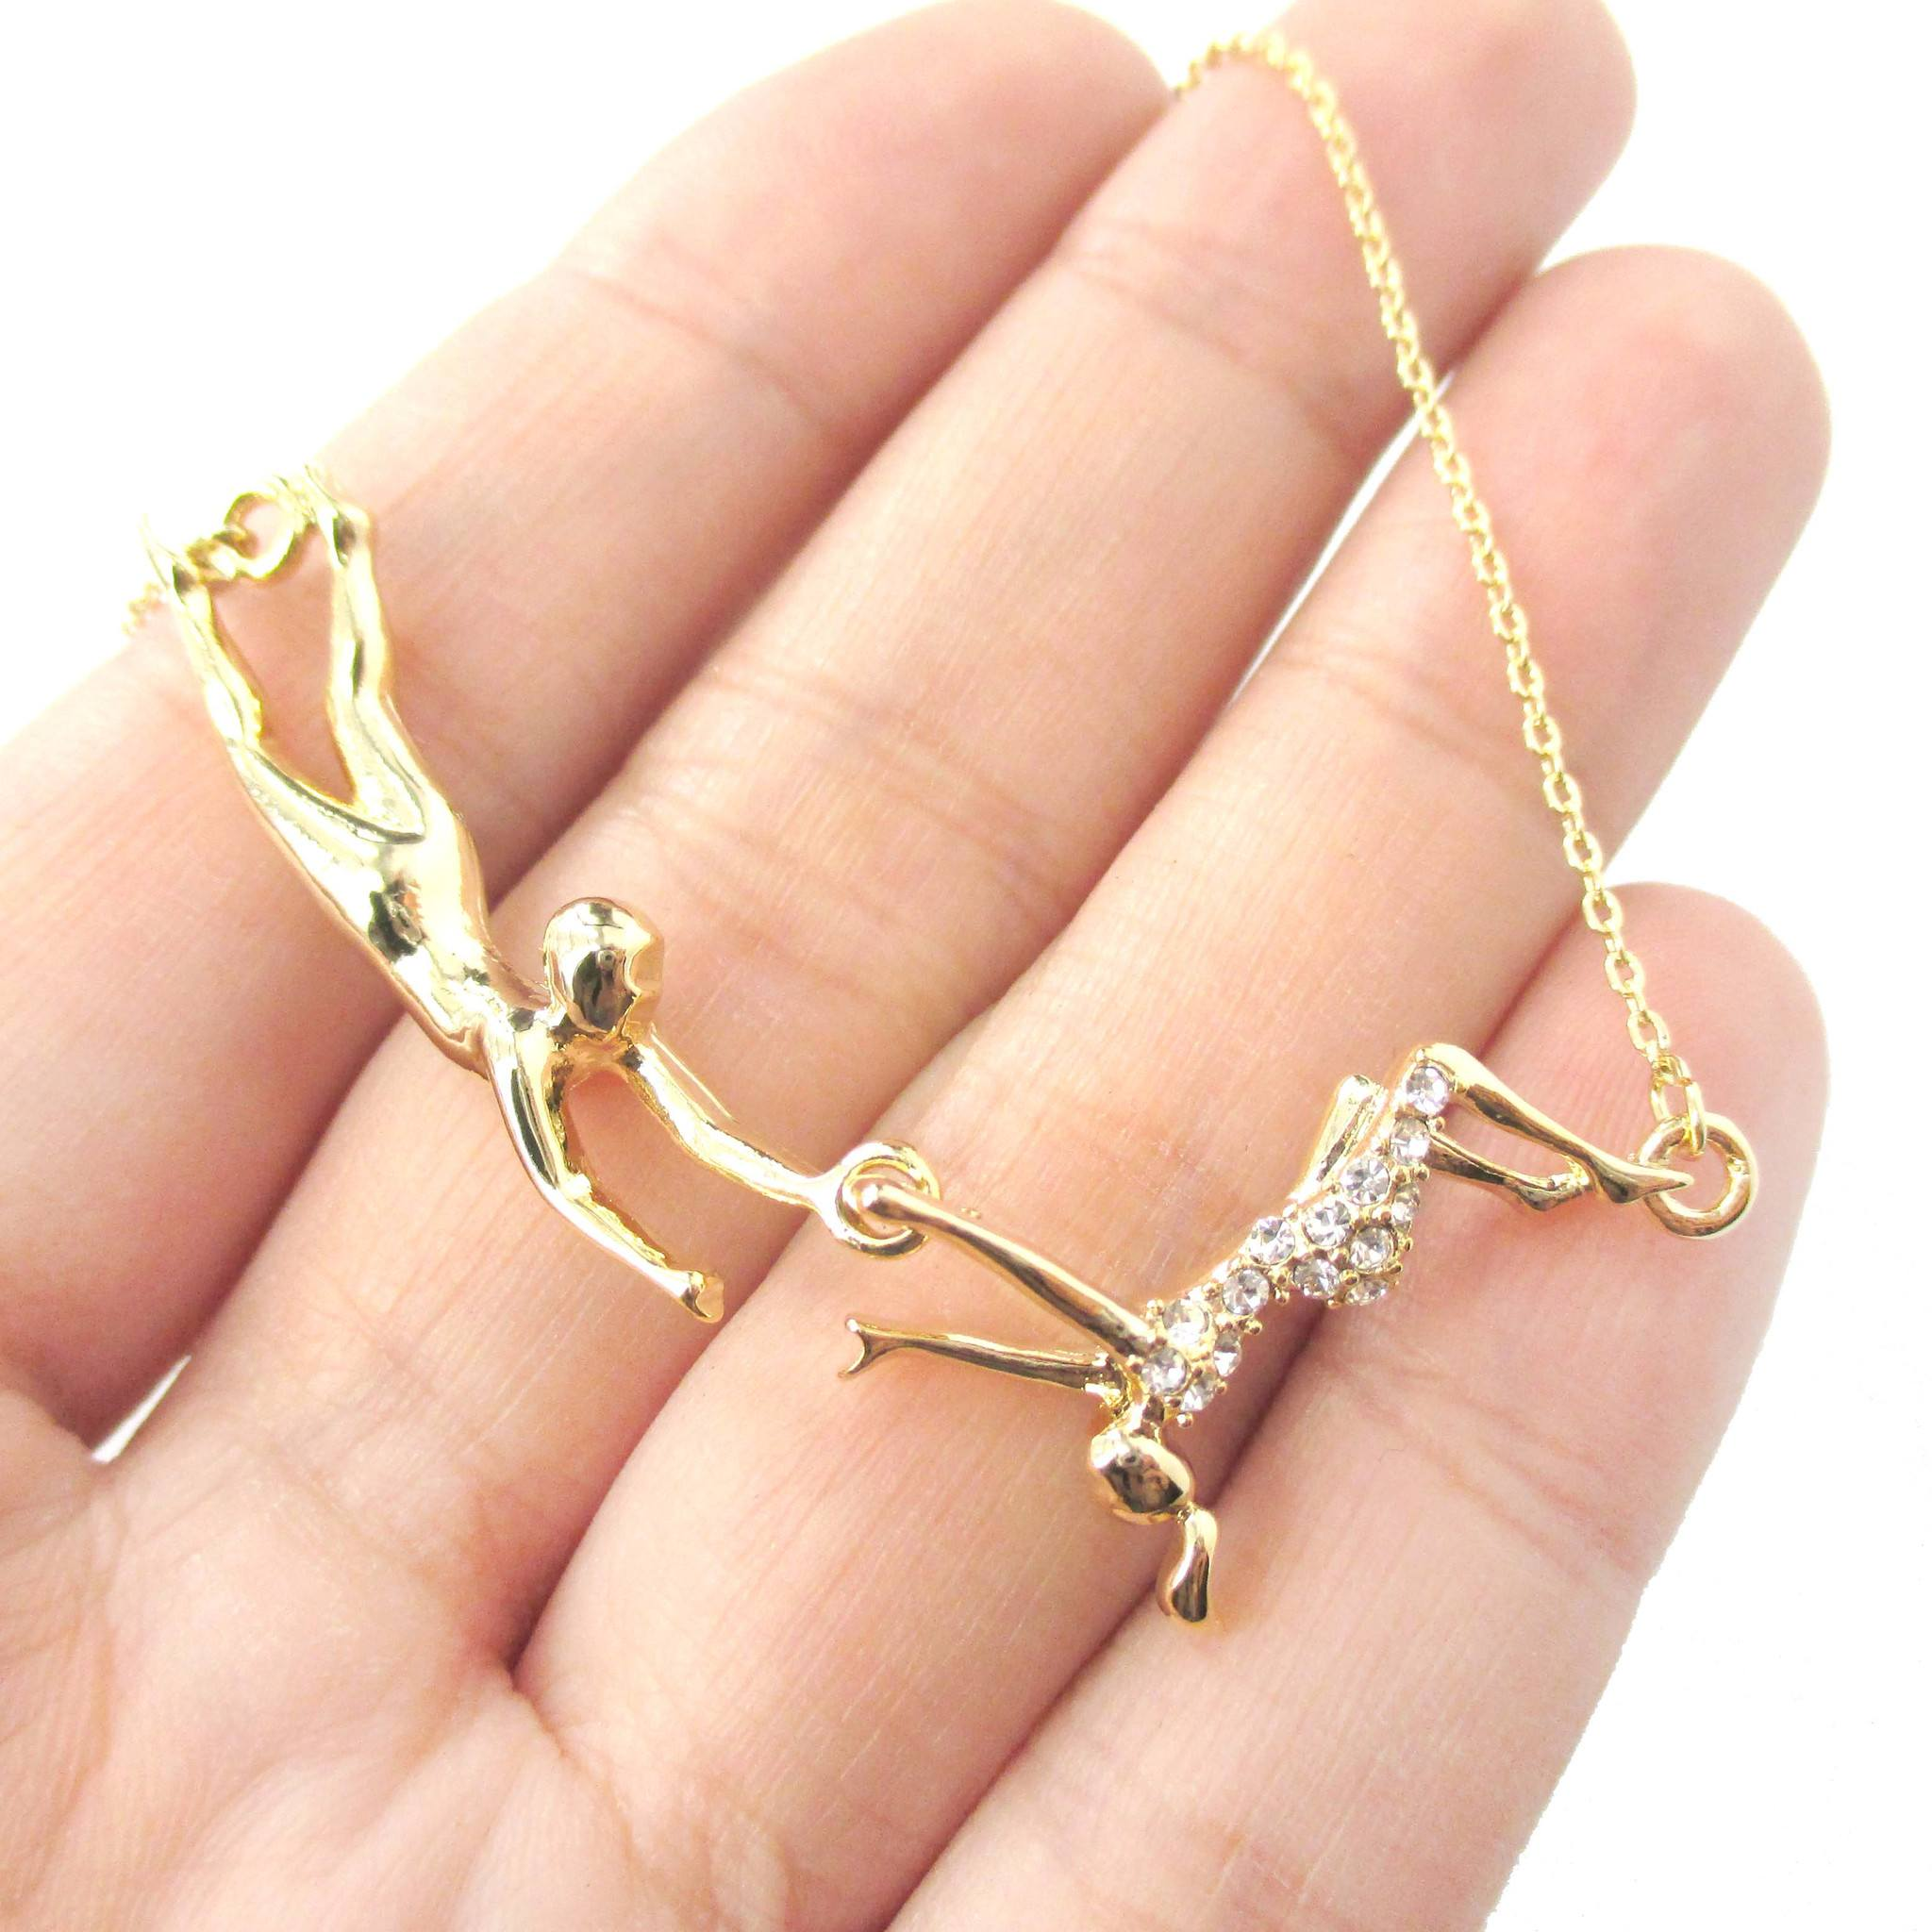 Flying Trapeze Acrobat Gymnastic Themed Necklace in Gold